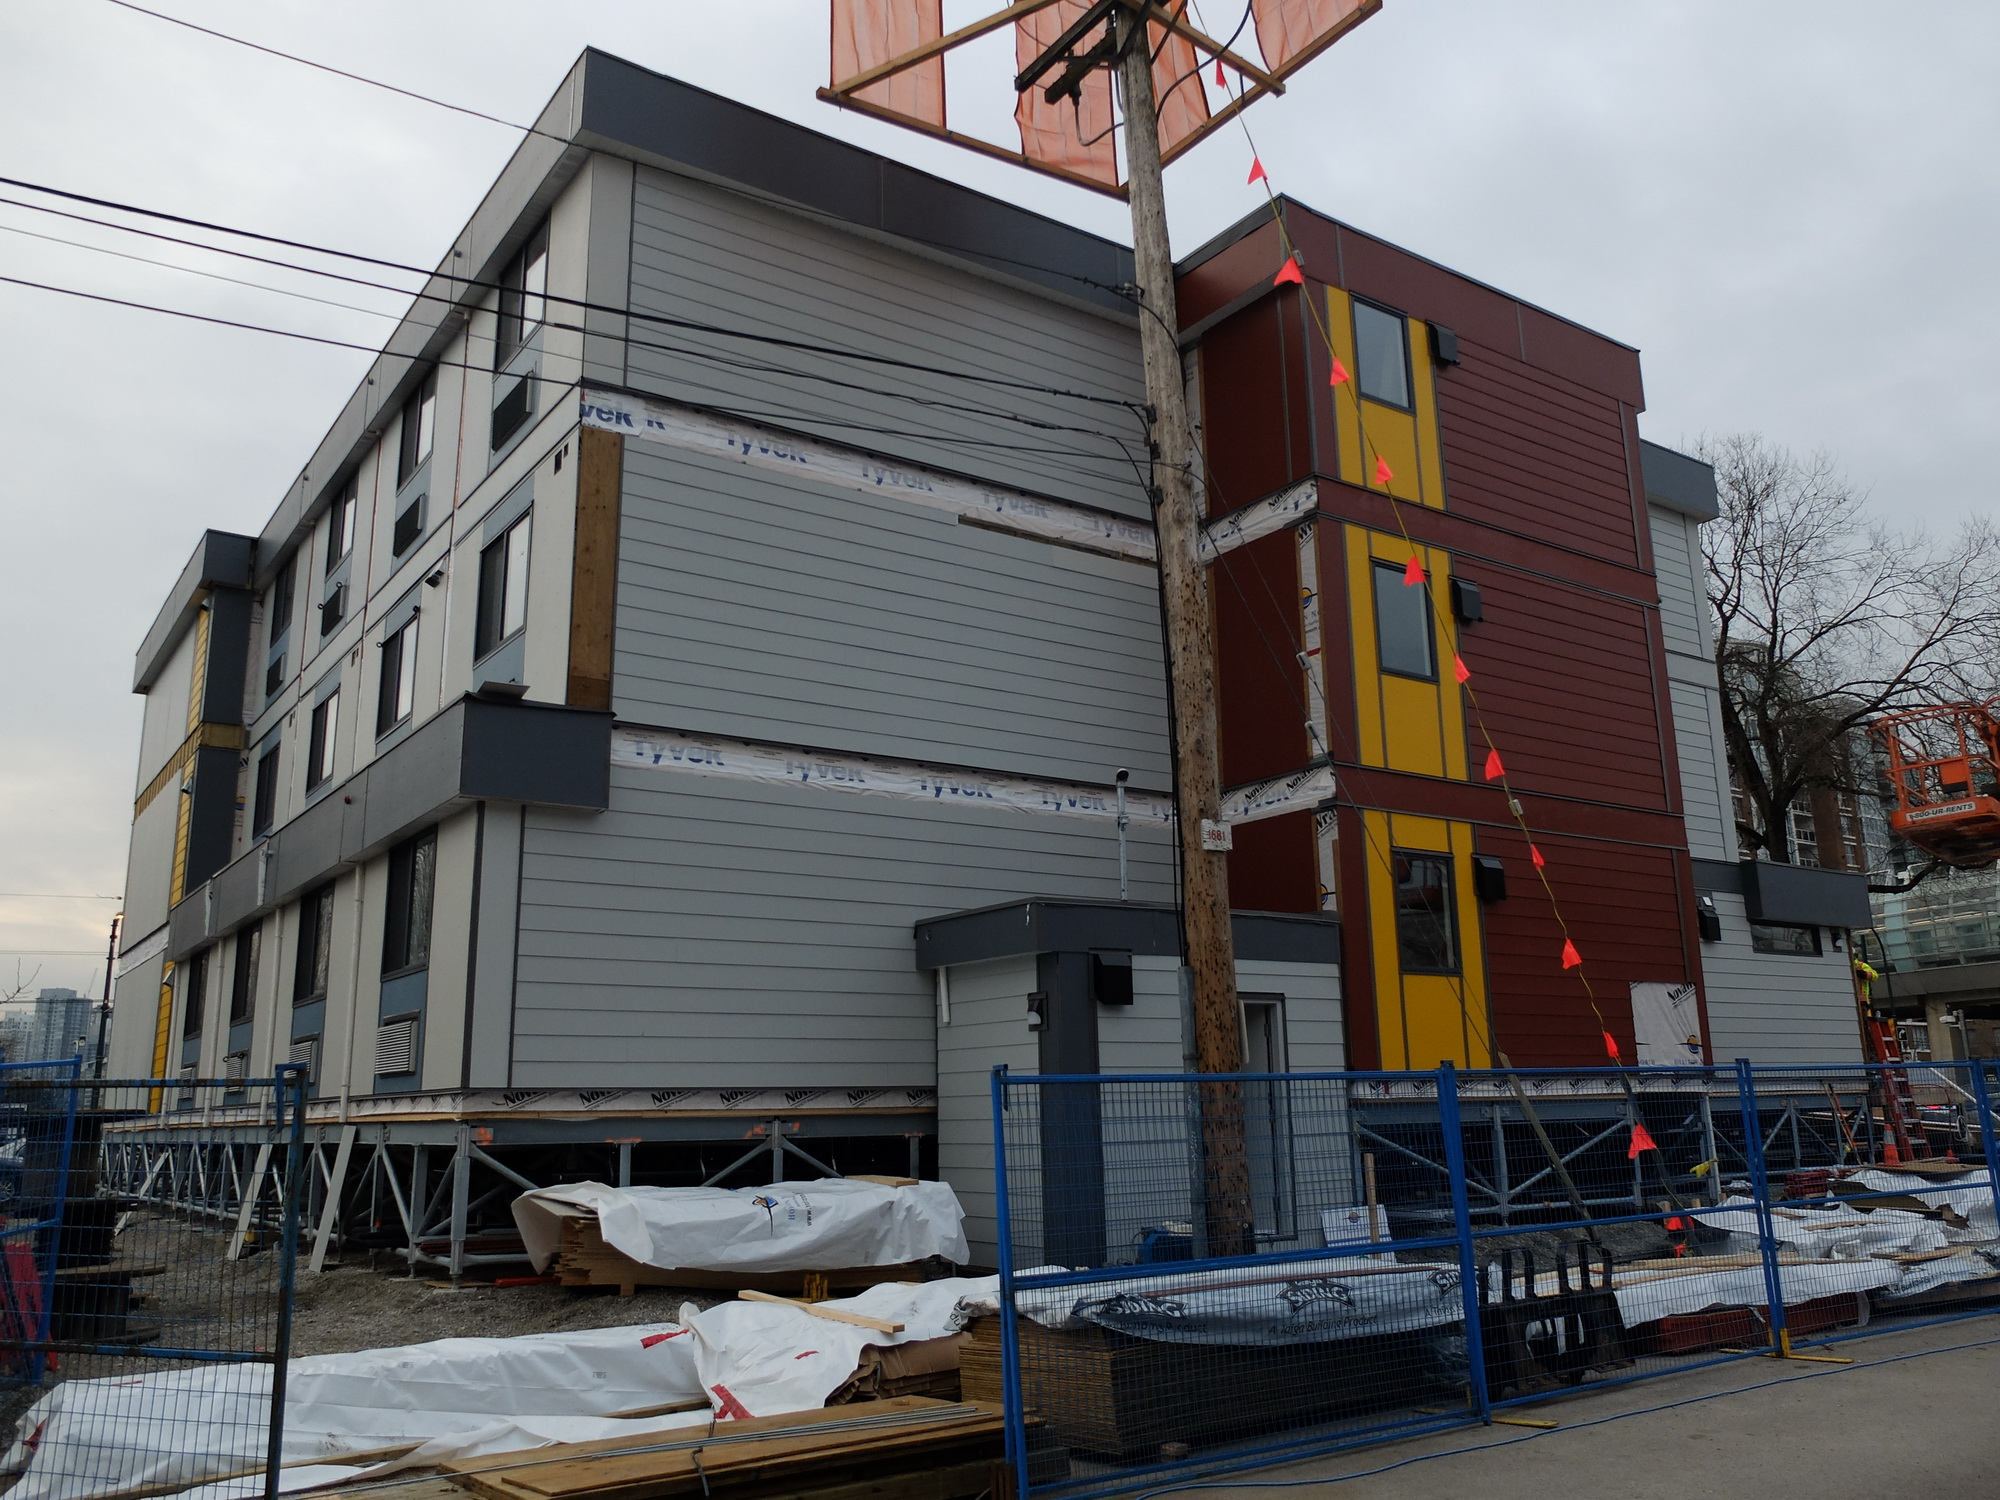 Movable Modular Affordable Housing | Price Tags